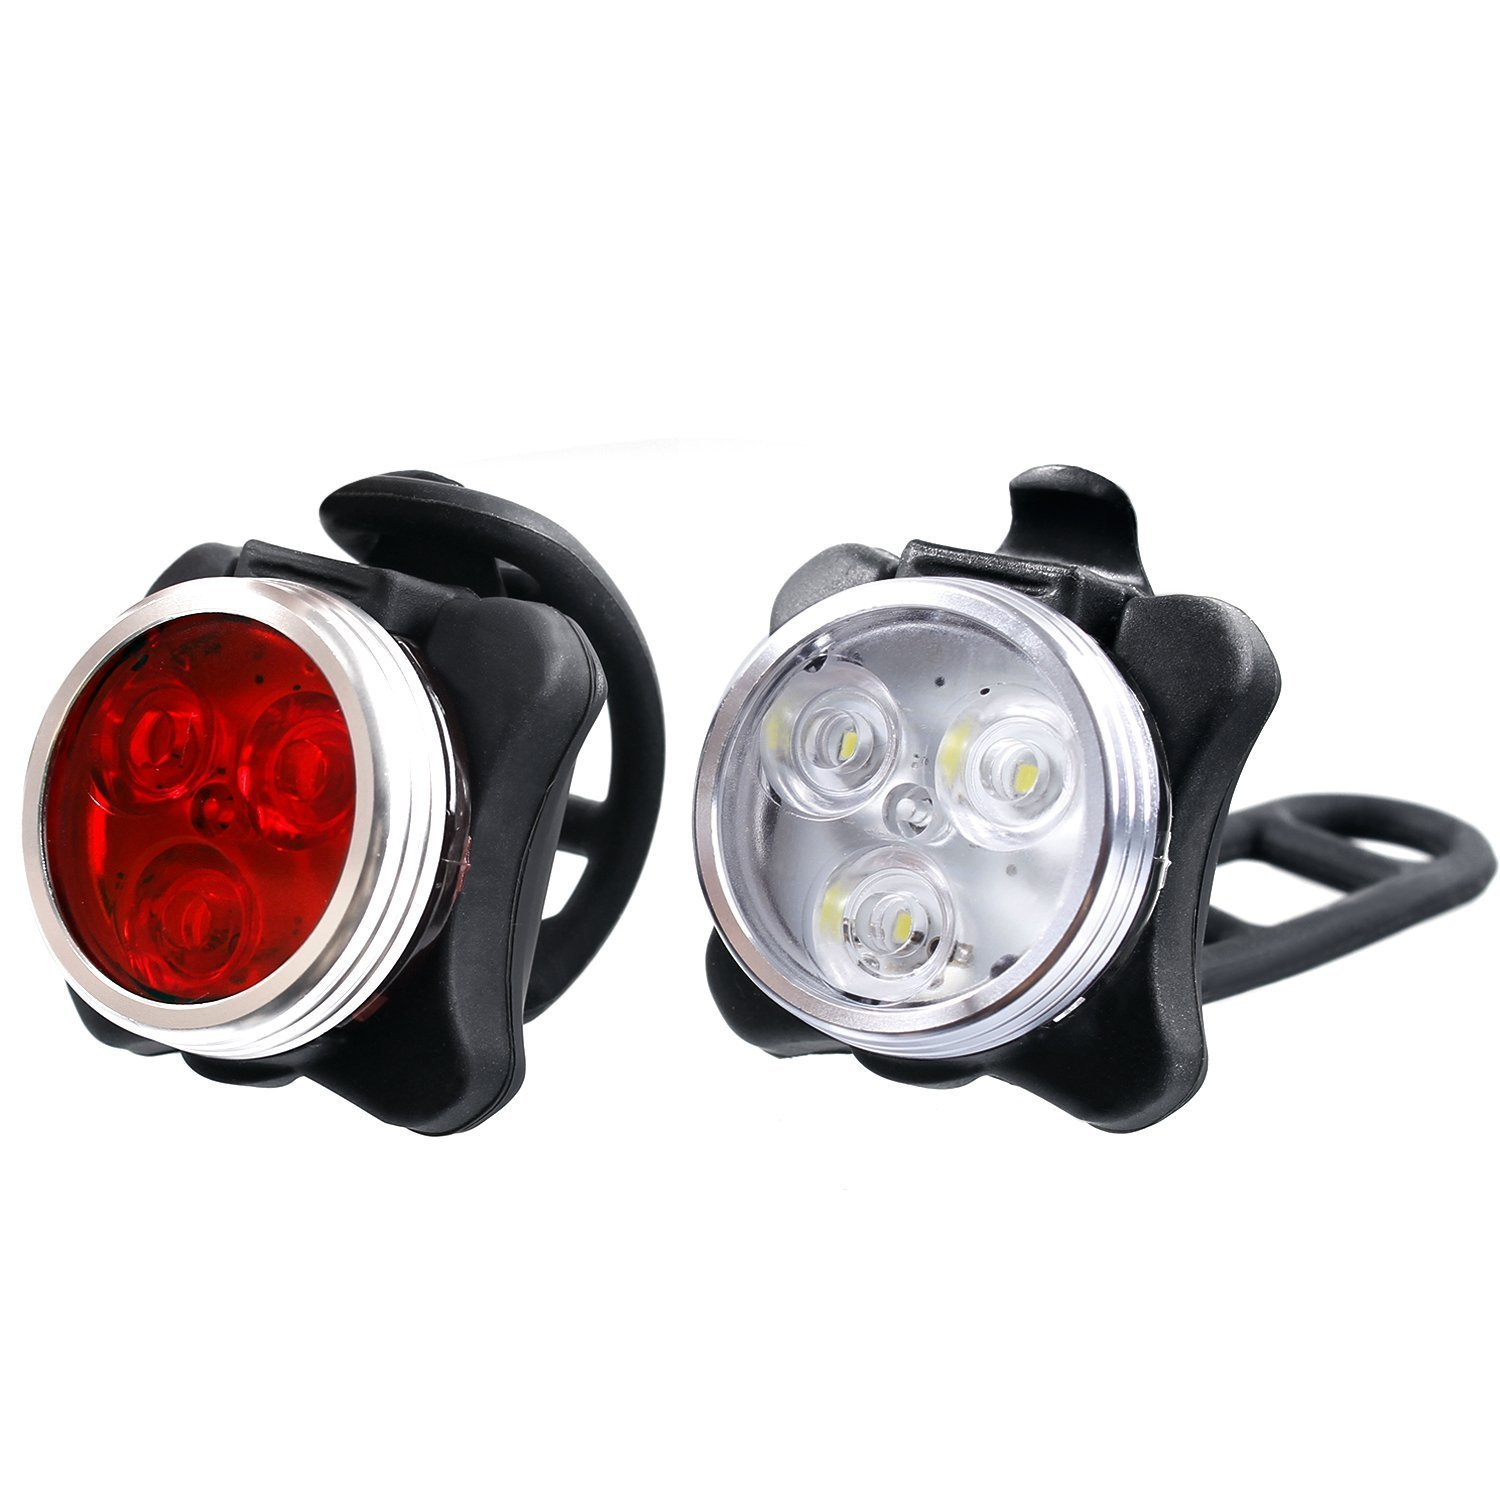 Riju LED Bike Lights Set,USB Rechargeable Bicycle Light Set Super Bright(white headlight+ red taillight +bike bell )650mAh Lithium Battery, 4 Light Mode Options